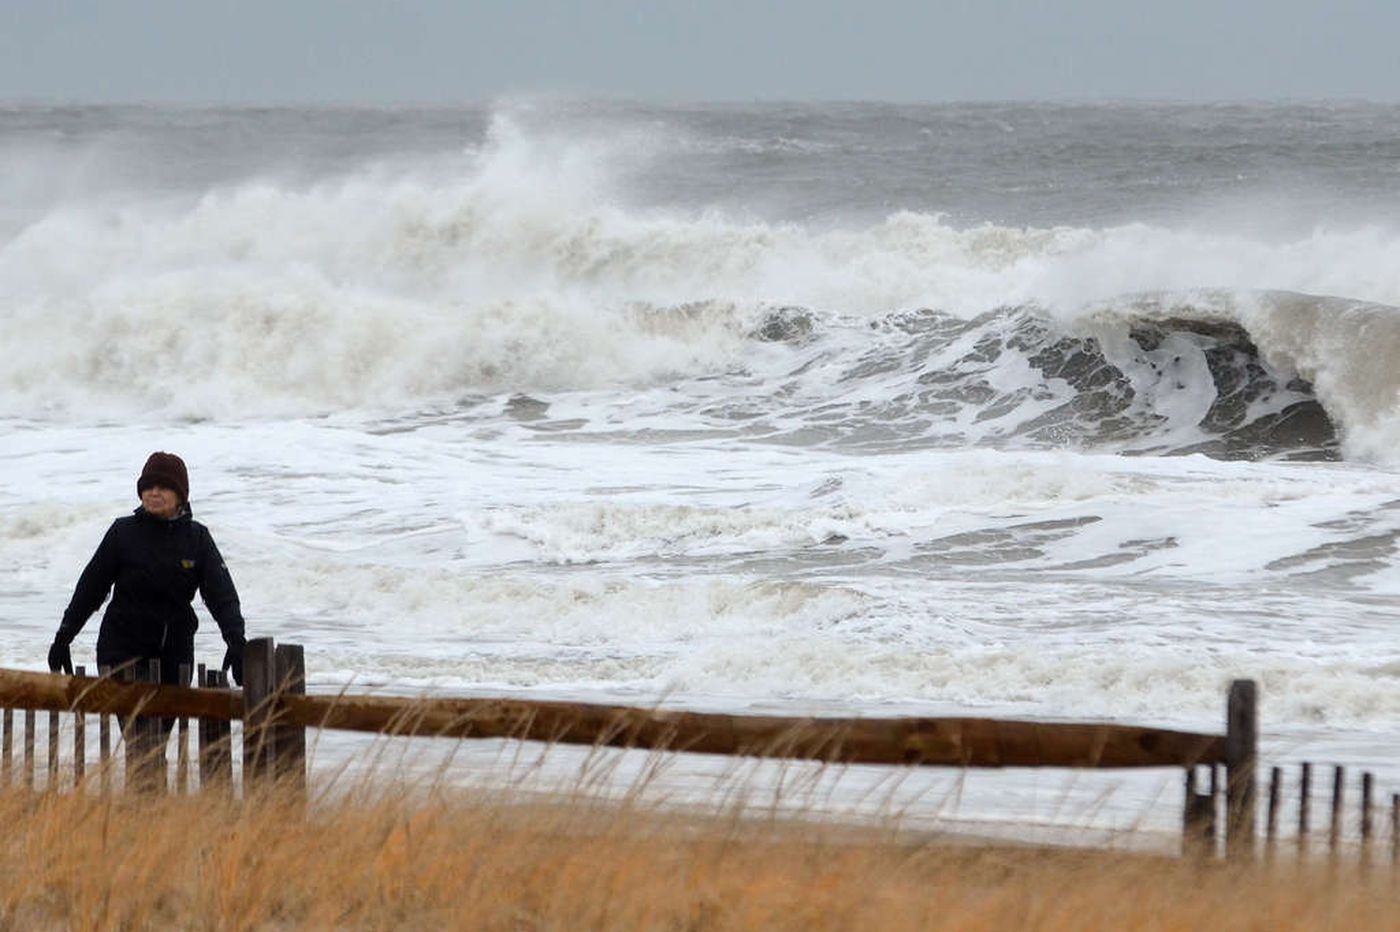 Rutgers: New Jersey shore sea rise is more than double the global average